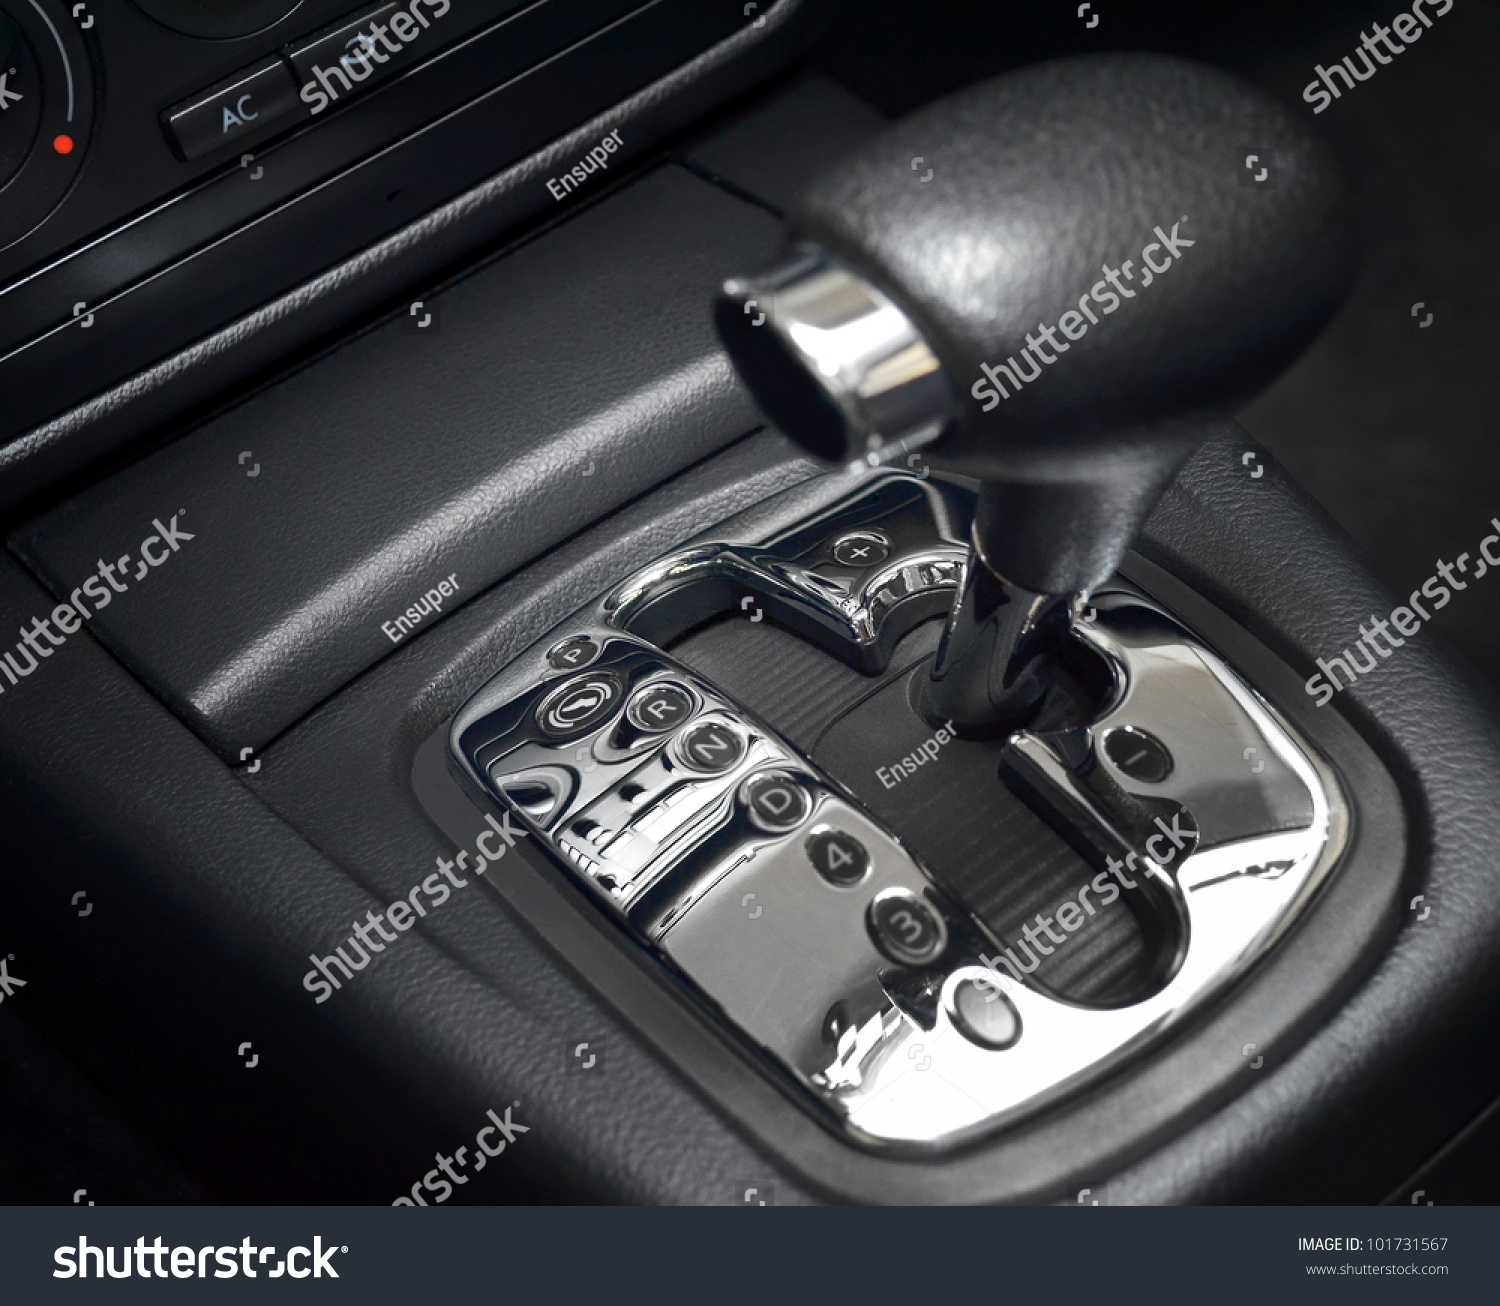 automatic transmission gear shift manual mode stock photo edit now rh shutterstock com Manual Transmission Car Dual-Clutch Transmission